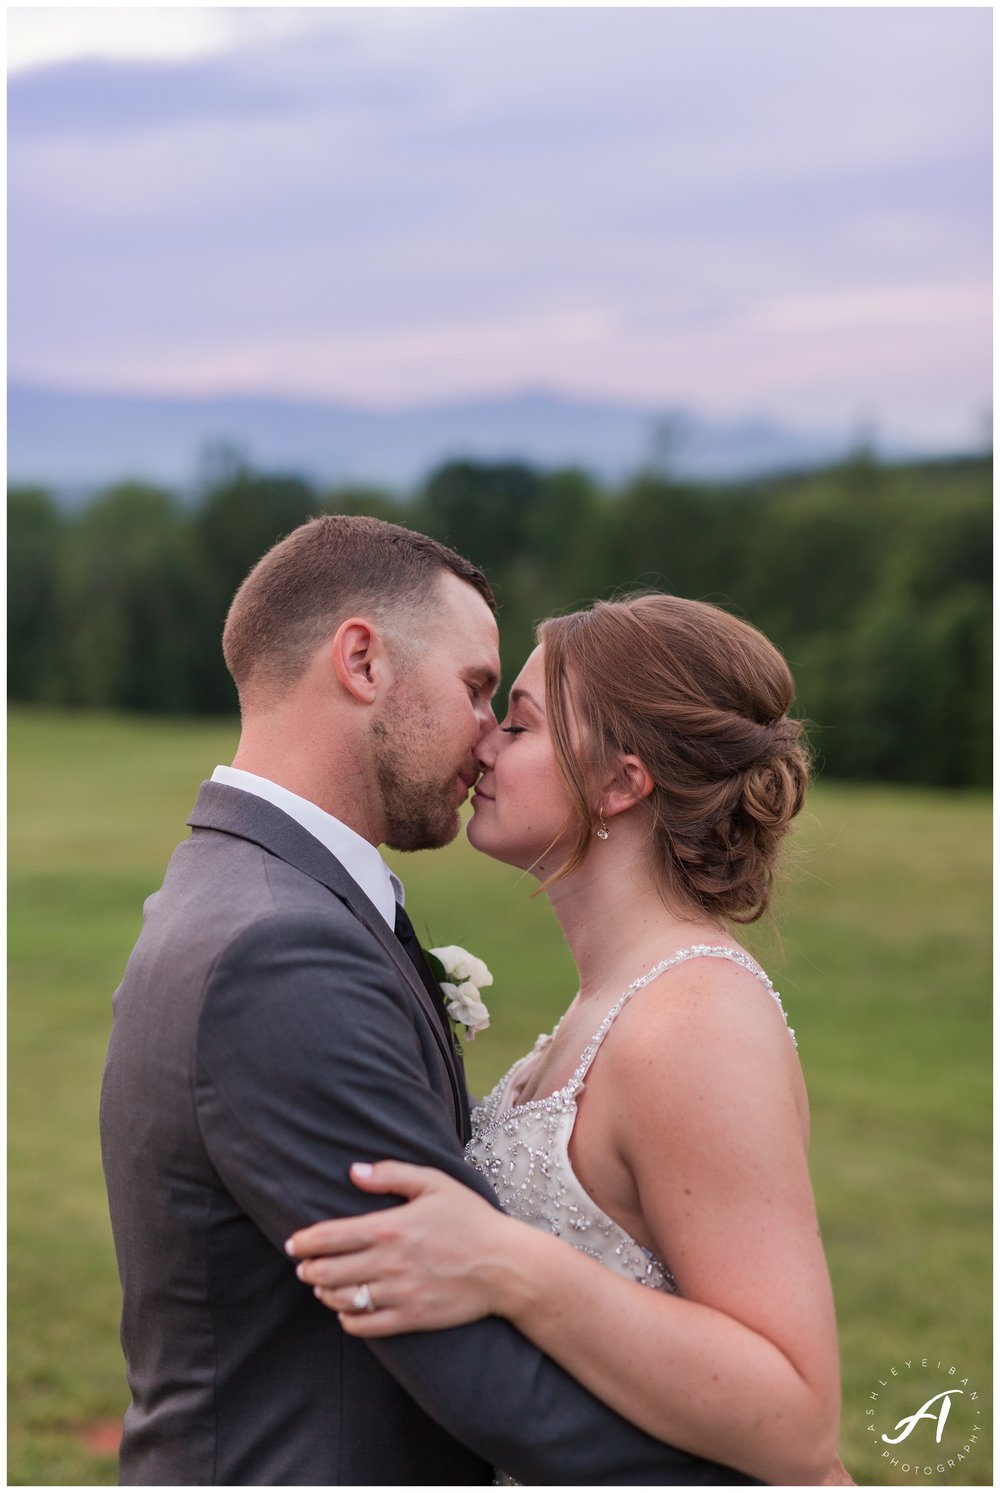 Mountain View Wedding at Sierra Vista in Central Virginia || Ashley Eiban Photography || www.ashleyeiban.com